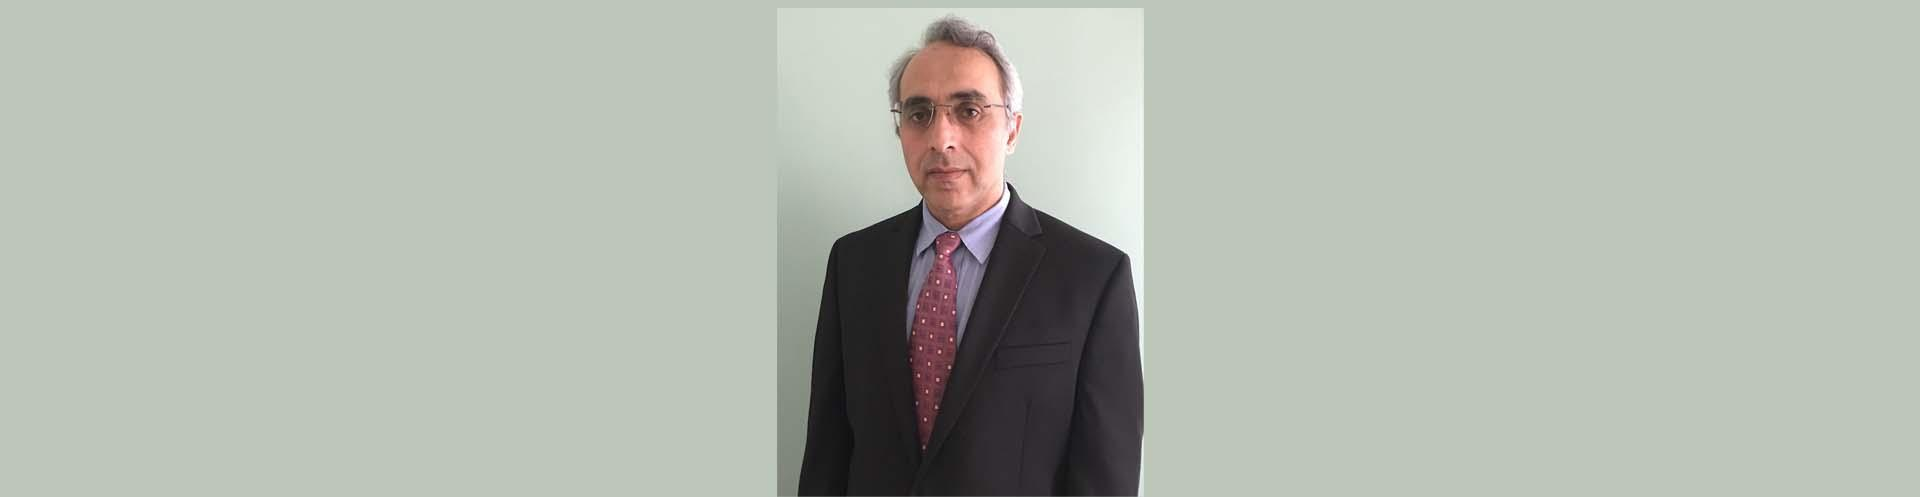 Dr. Coskun Cetinkaya has been appointed Department Chair of Computer Science